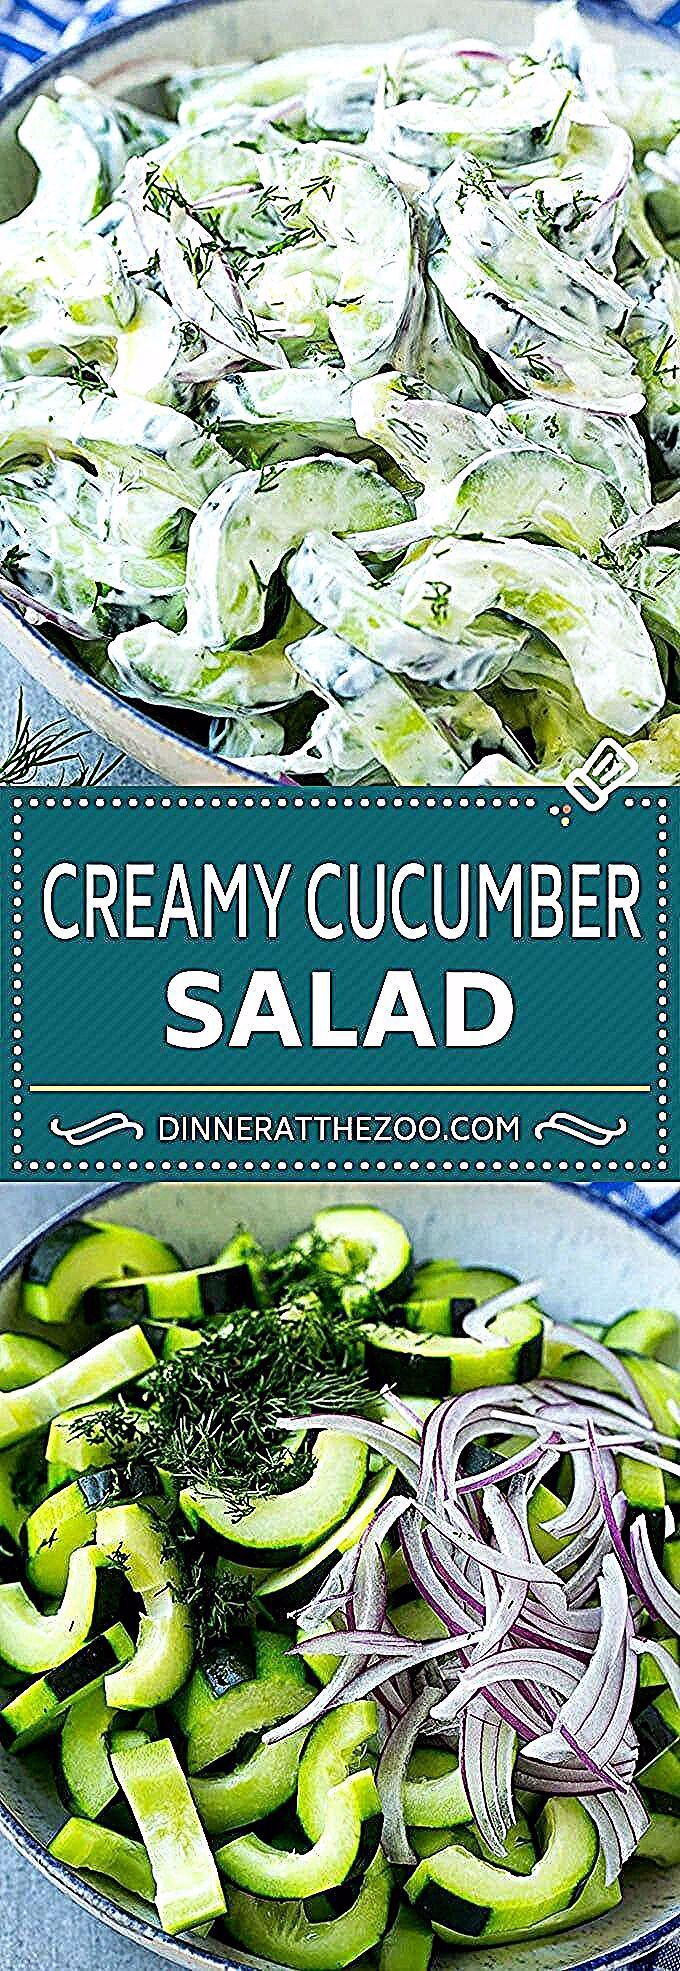 - Creamy Cucumber Salad Recipe   Cucumber Dill Salad   German Cucumber Salad   Cucumber Sour Cream Salad #cucumber #salad #recipe #dinneratthezoo #foodforlife #fooddiaries #foodvideos #foodies #instagram #cooking #fooddaily #foodiepics #foodpictures #foodporn #restaurant #Foods4Thought #eat #amazing #homemade